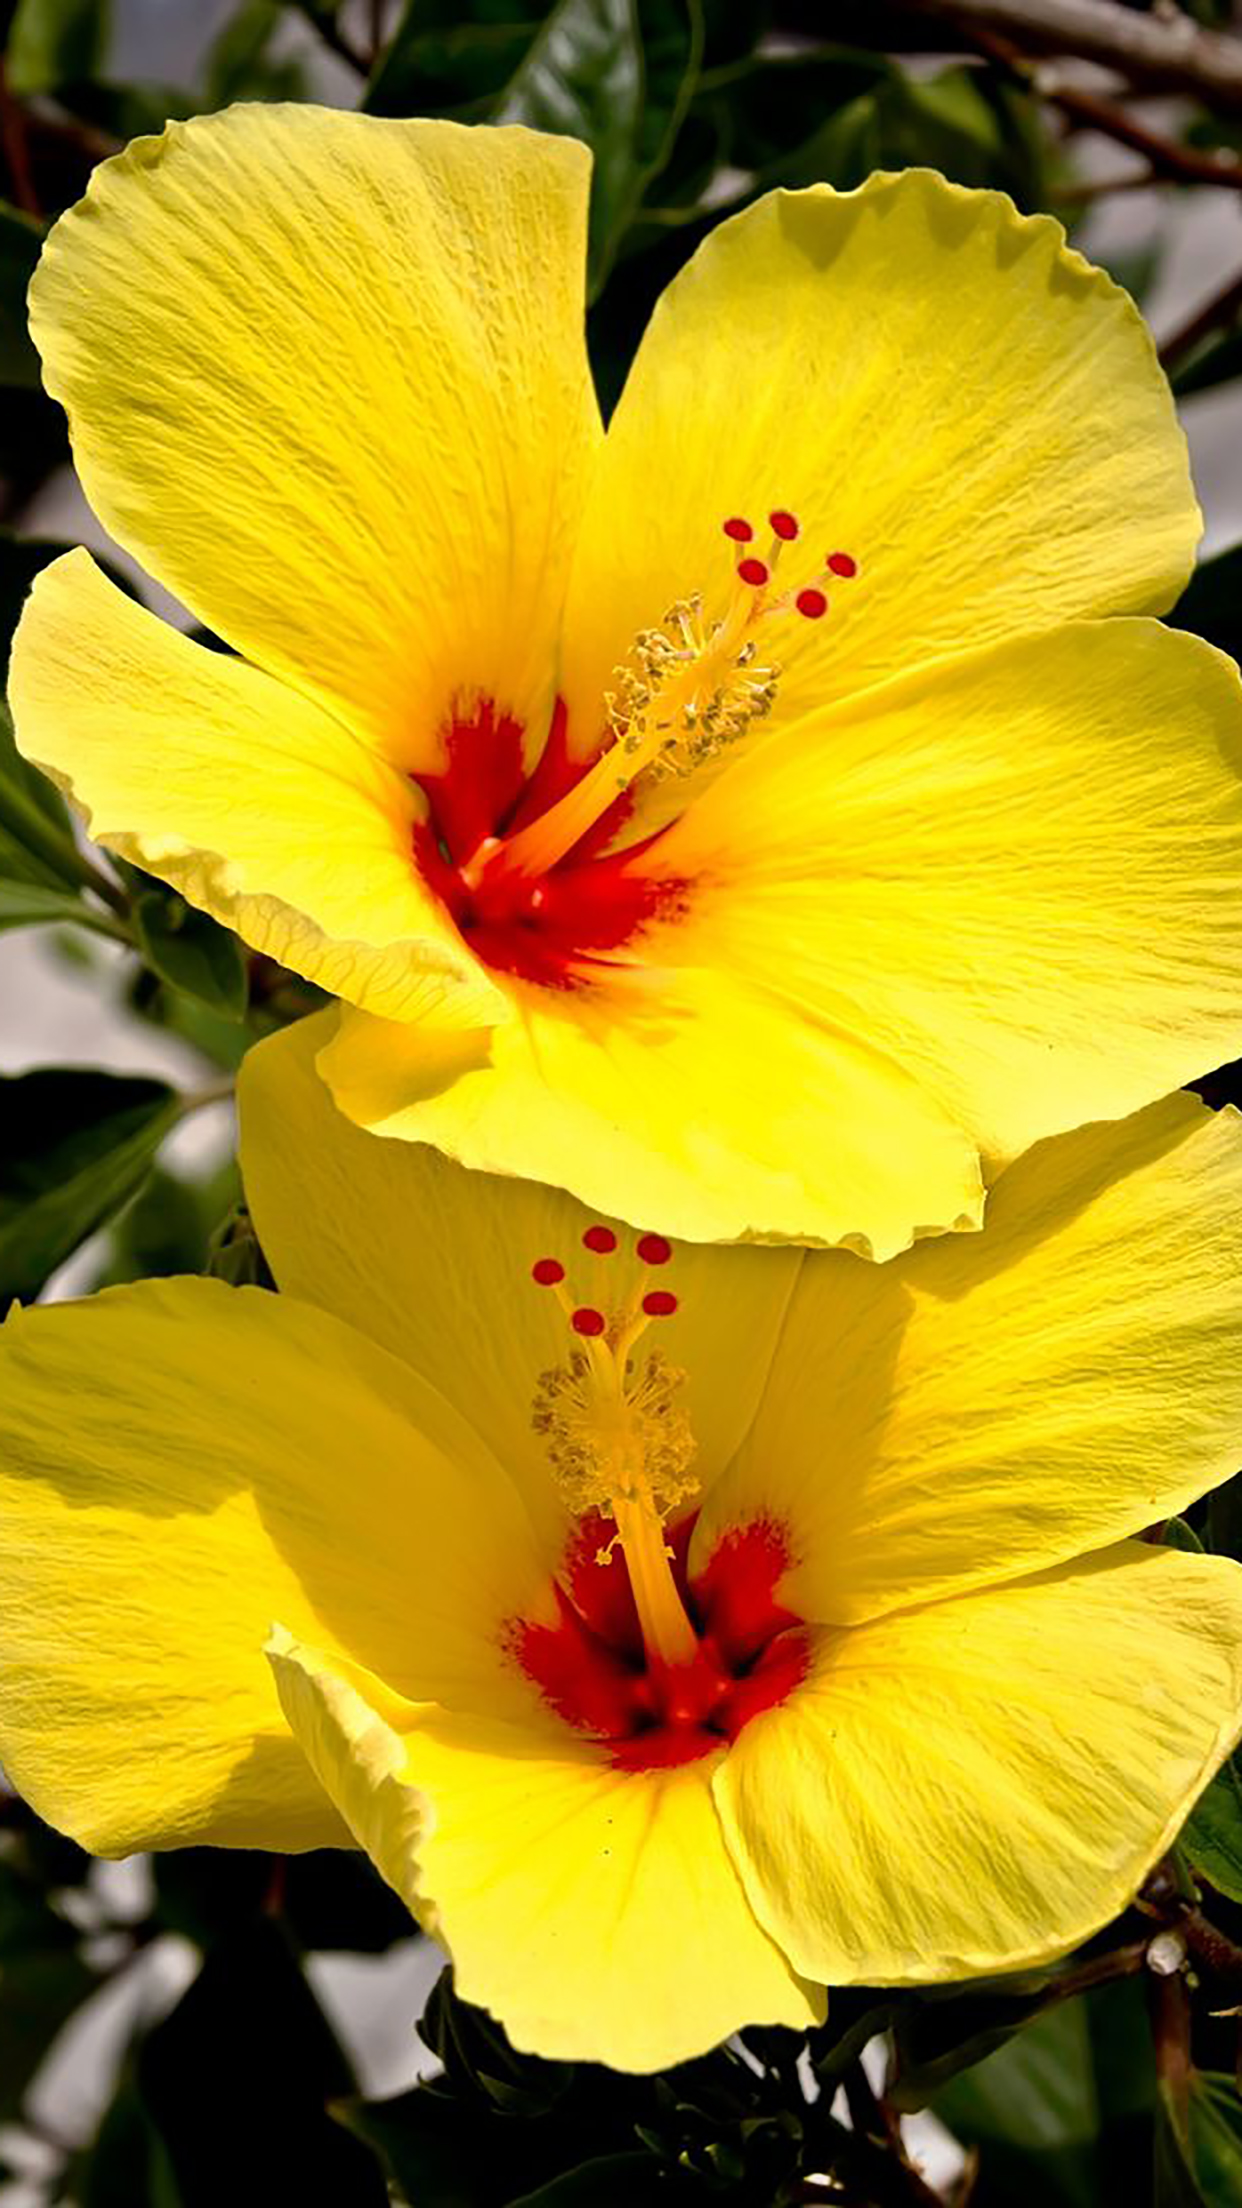 hibiscus : yellow wallpaper for iphone x, 8, 7, 6 - free download on